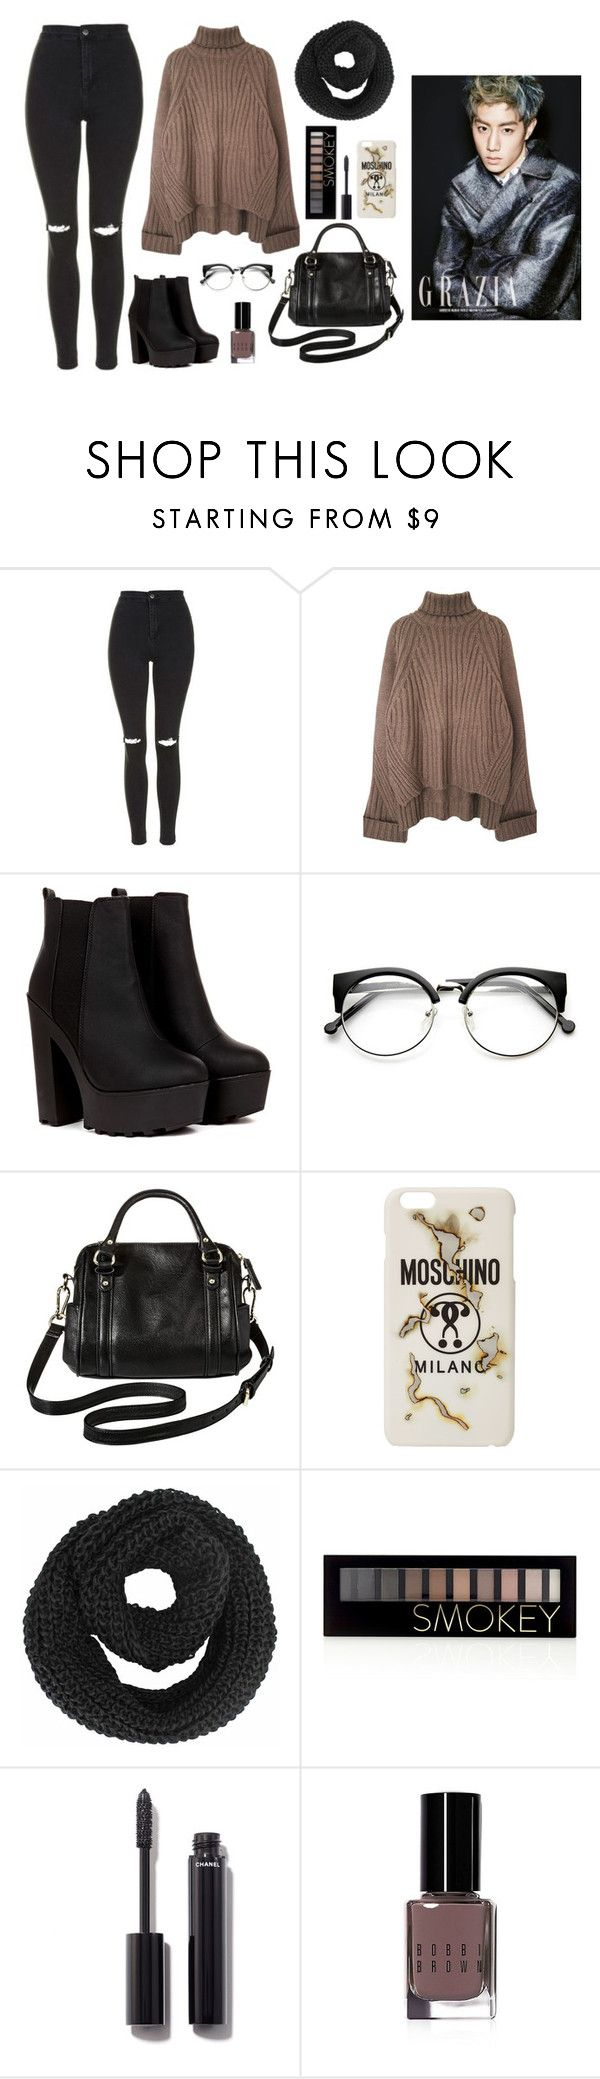 """Mark's ideal type (winter)"" by got7outfits ❤ liked on Polyvore featuring Topshop, Merona, Moschino, Forever 21, Chanel and Bobbi Brown Cosmetics"